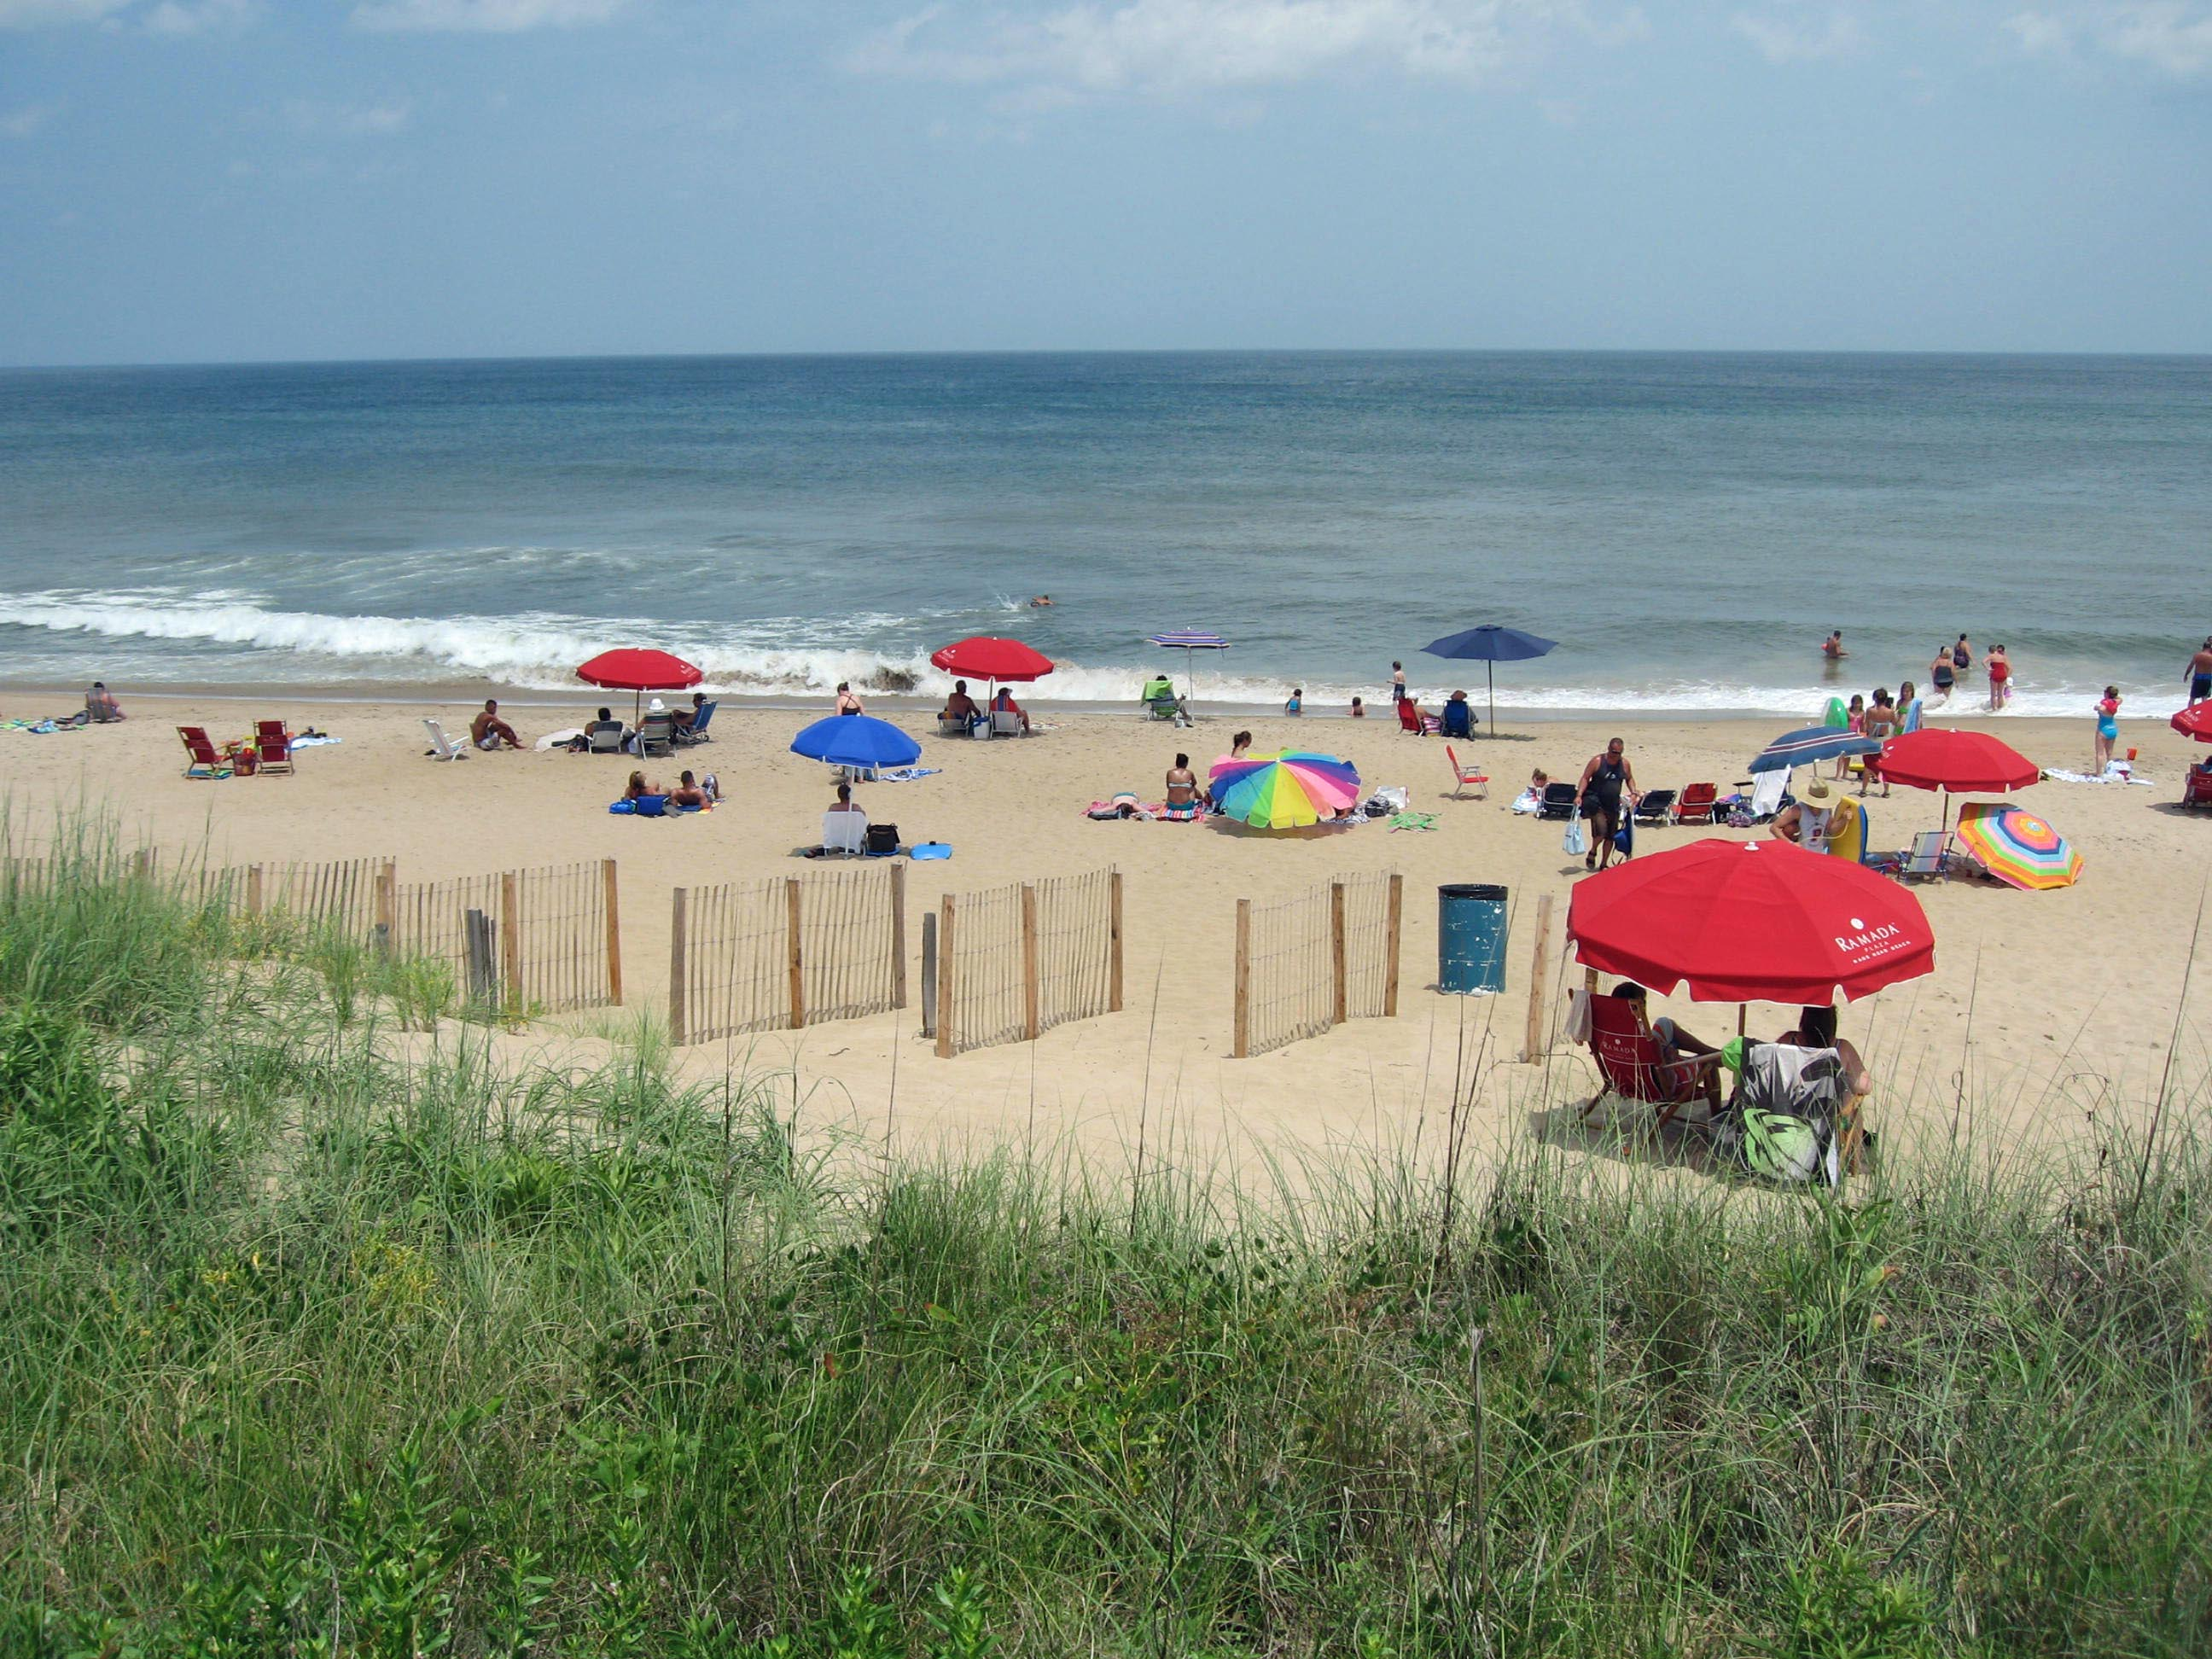 Vacation Package Deals to North Carolina Outer Banks, online travel booking, chep travel deals, hotel accommodations, travel reservations, discount travel